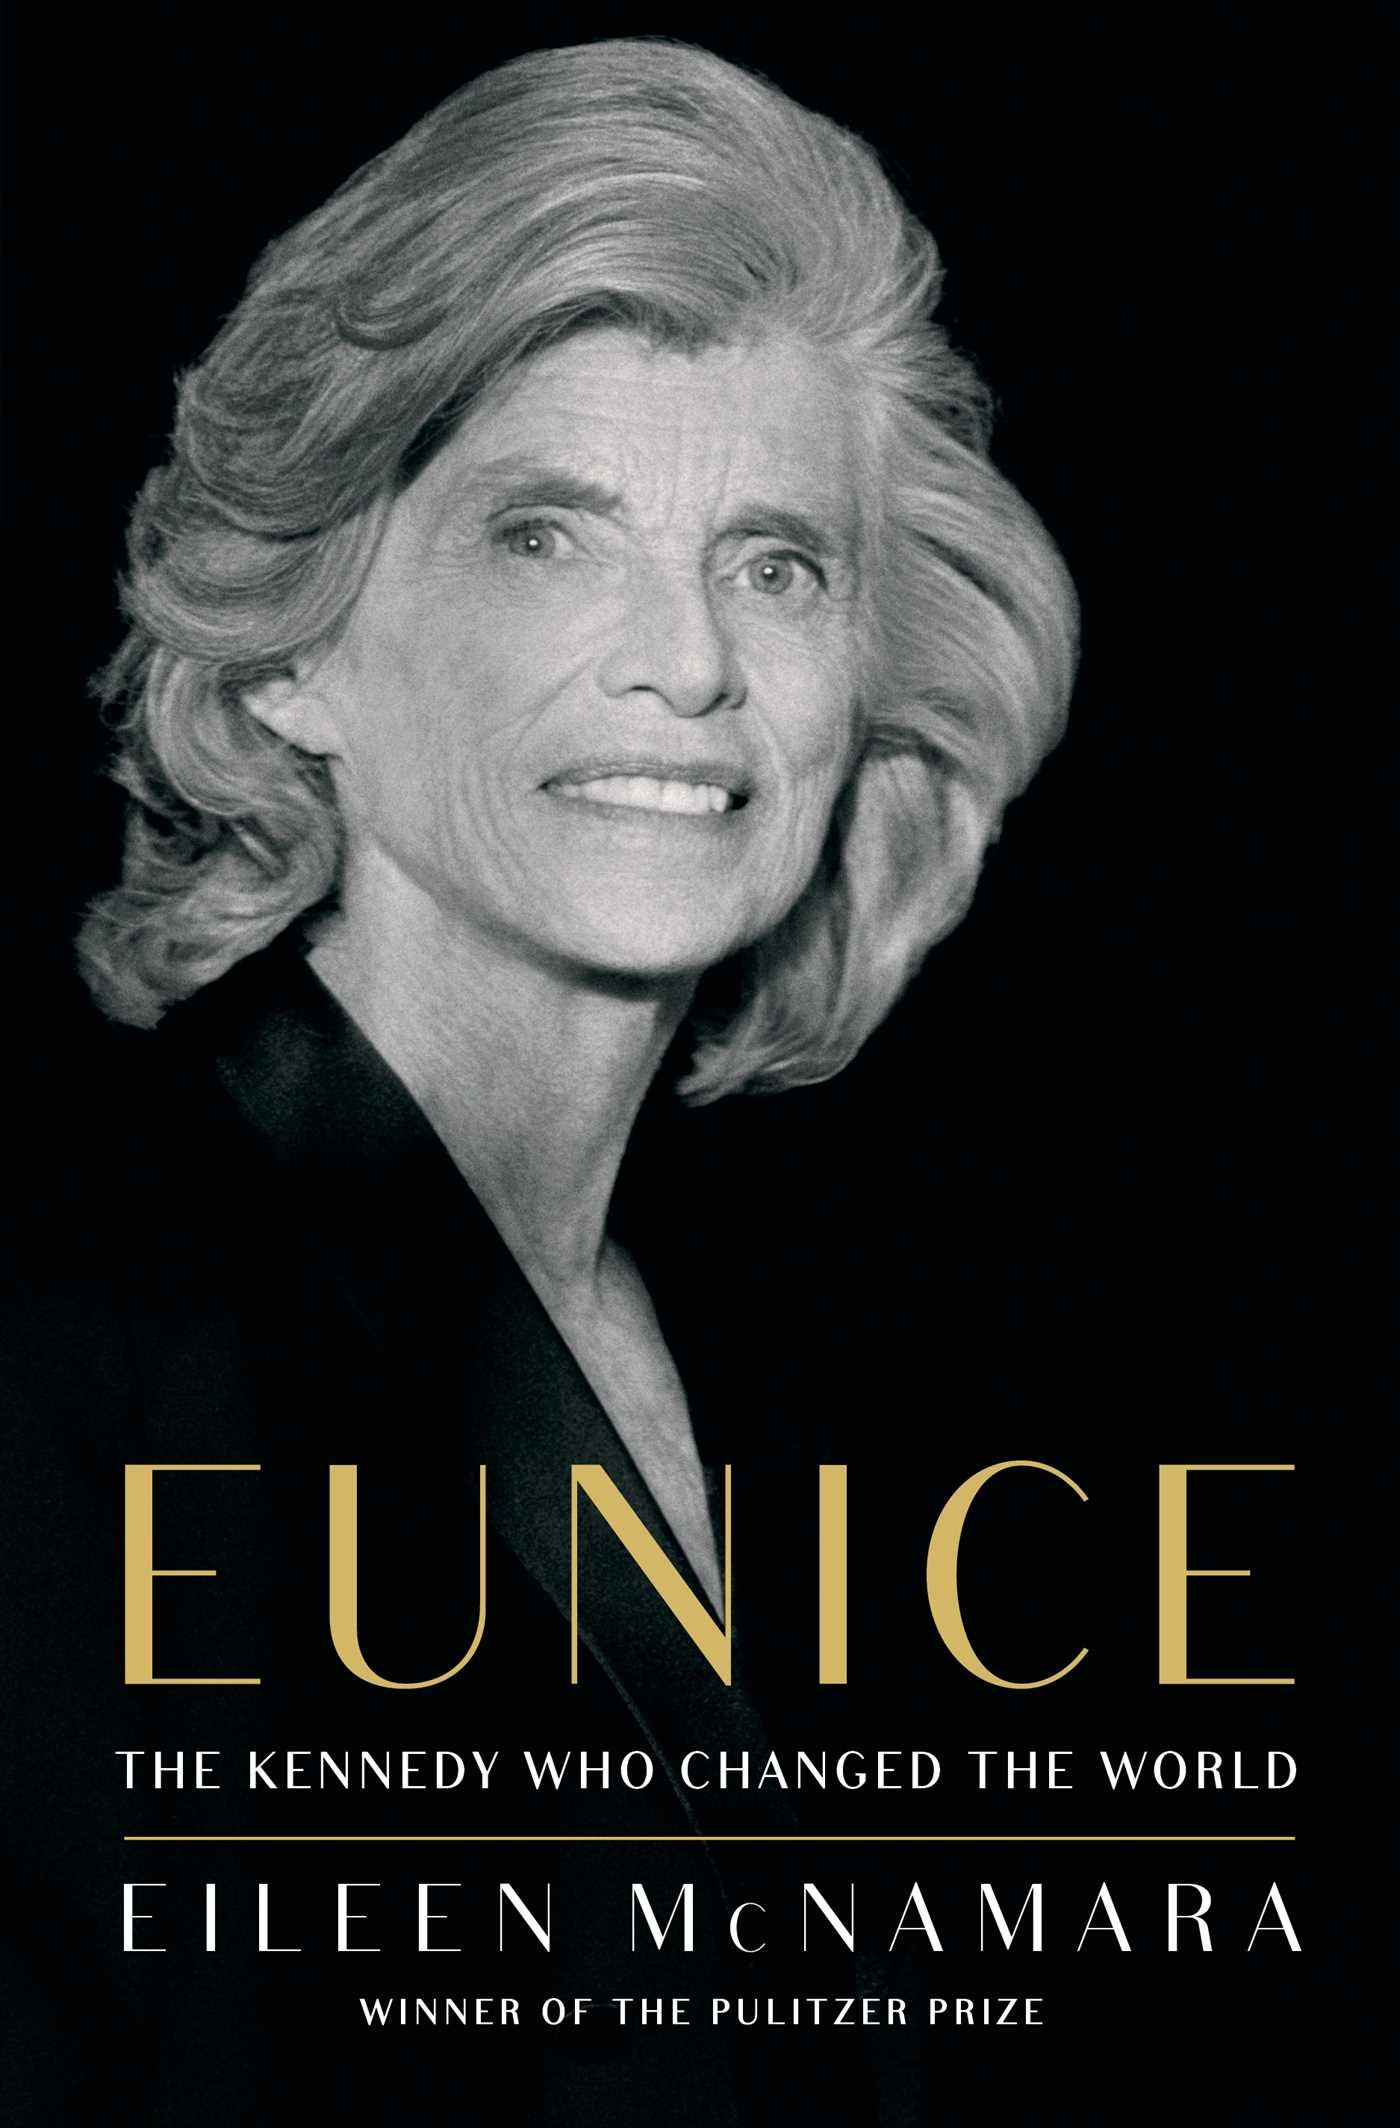 The Kennedy Who Changed the World Eunice